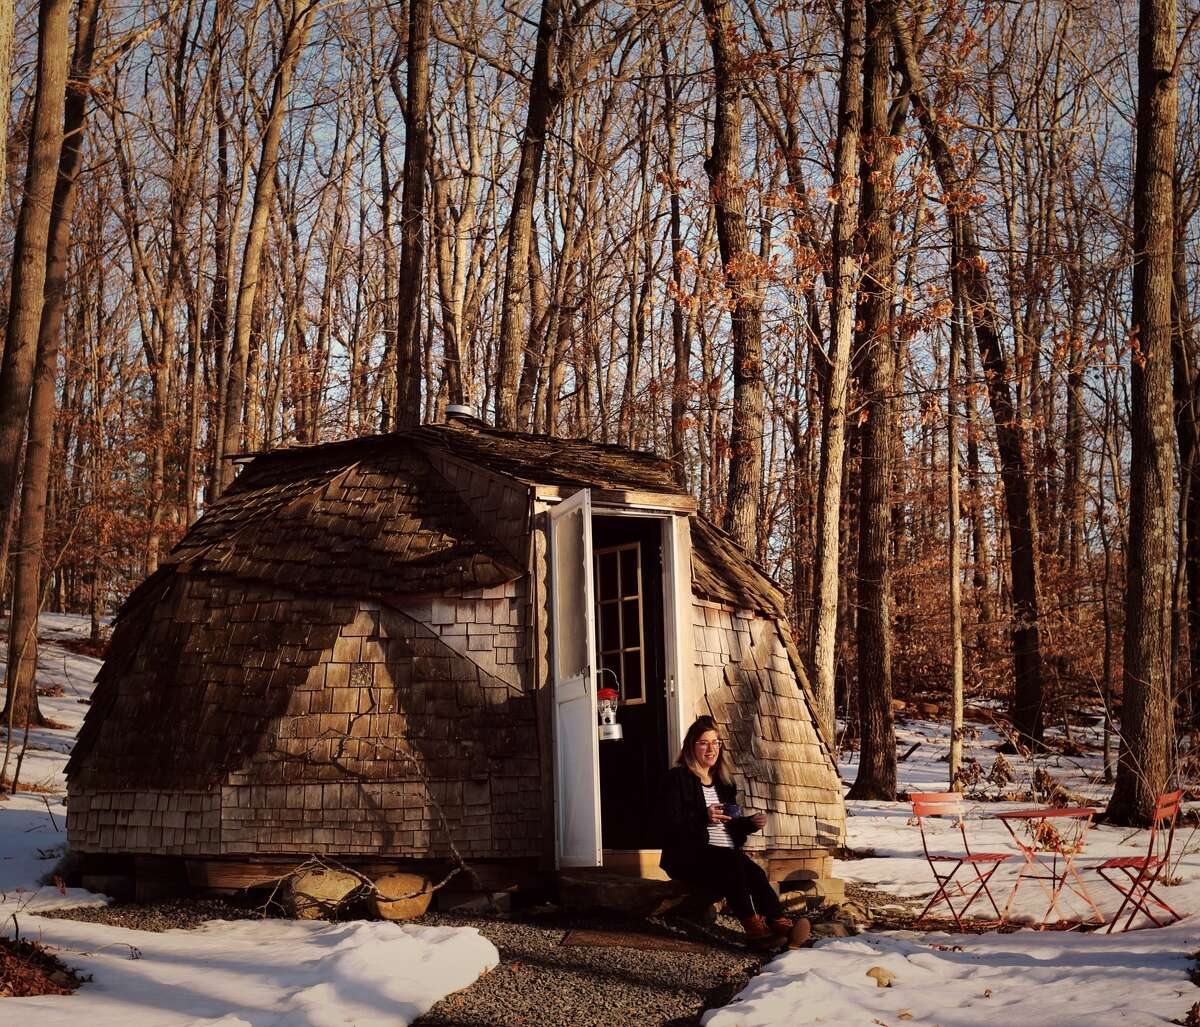 """Nicole Desanti photographed in the """"geodesic dome"""" at Sun One Organic Farm in Bethlehem, Conn. on March 4, 2021. The dome is available to book via Airbnb."""